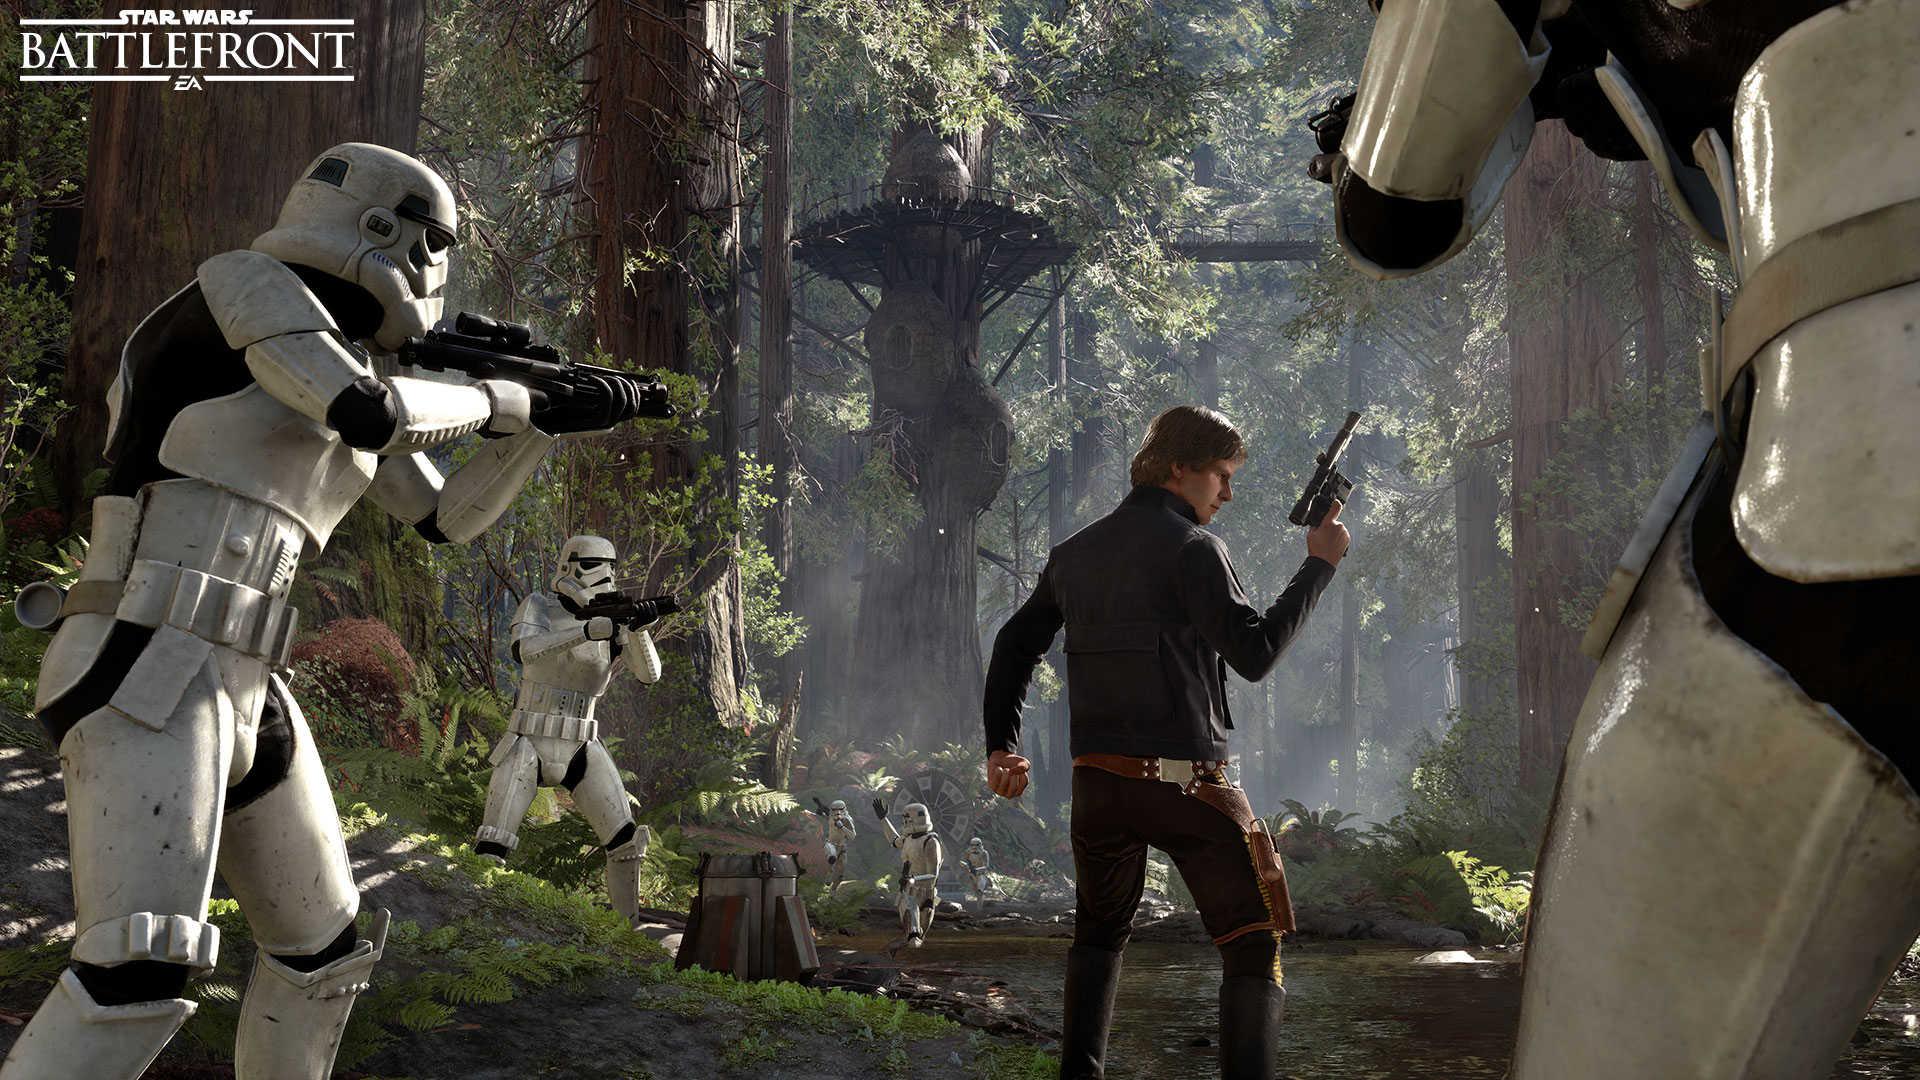 Star Wars Battlefront Heroes and Villains Revealed - 2015-10-20 12:25:08